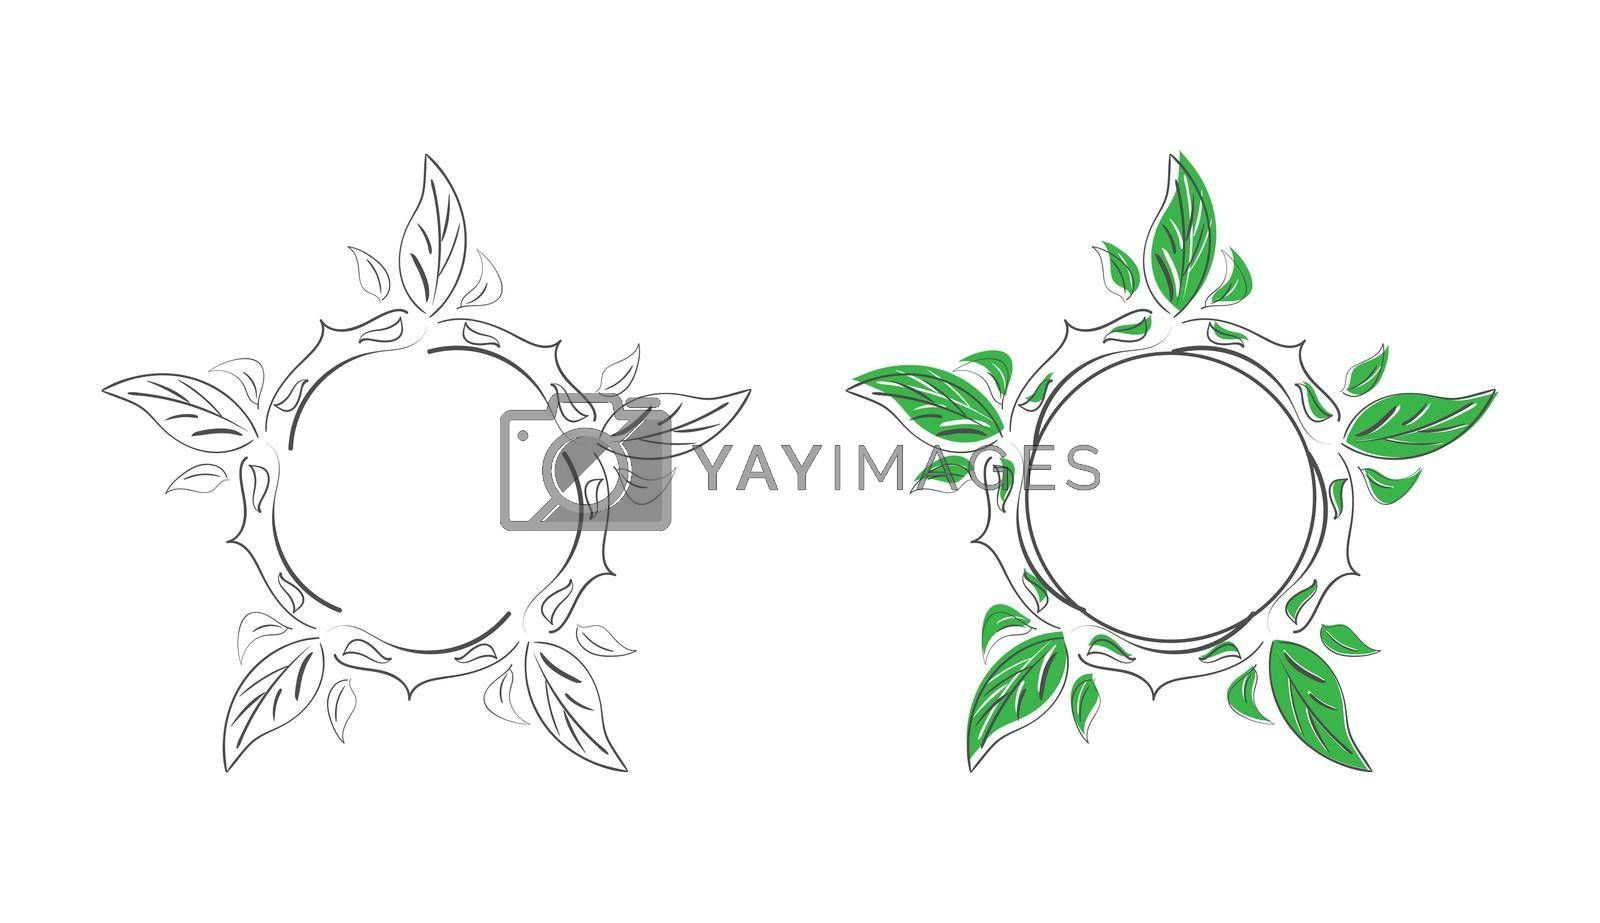 Royalty free image of set of decorative patterned doodle-style frames for photos, illustrations, text, and creative design by Grommik